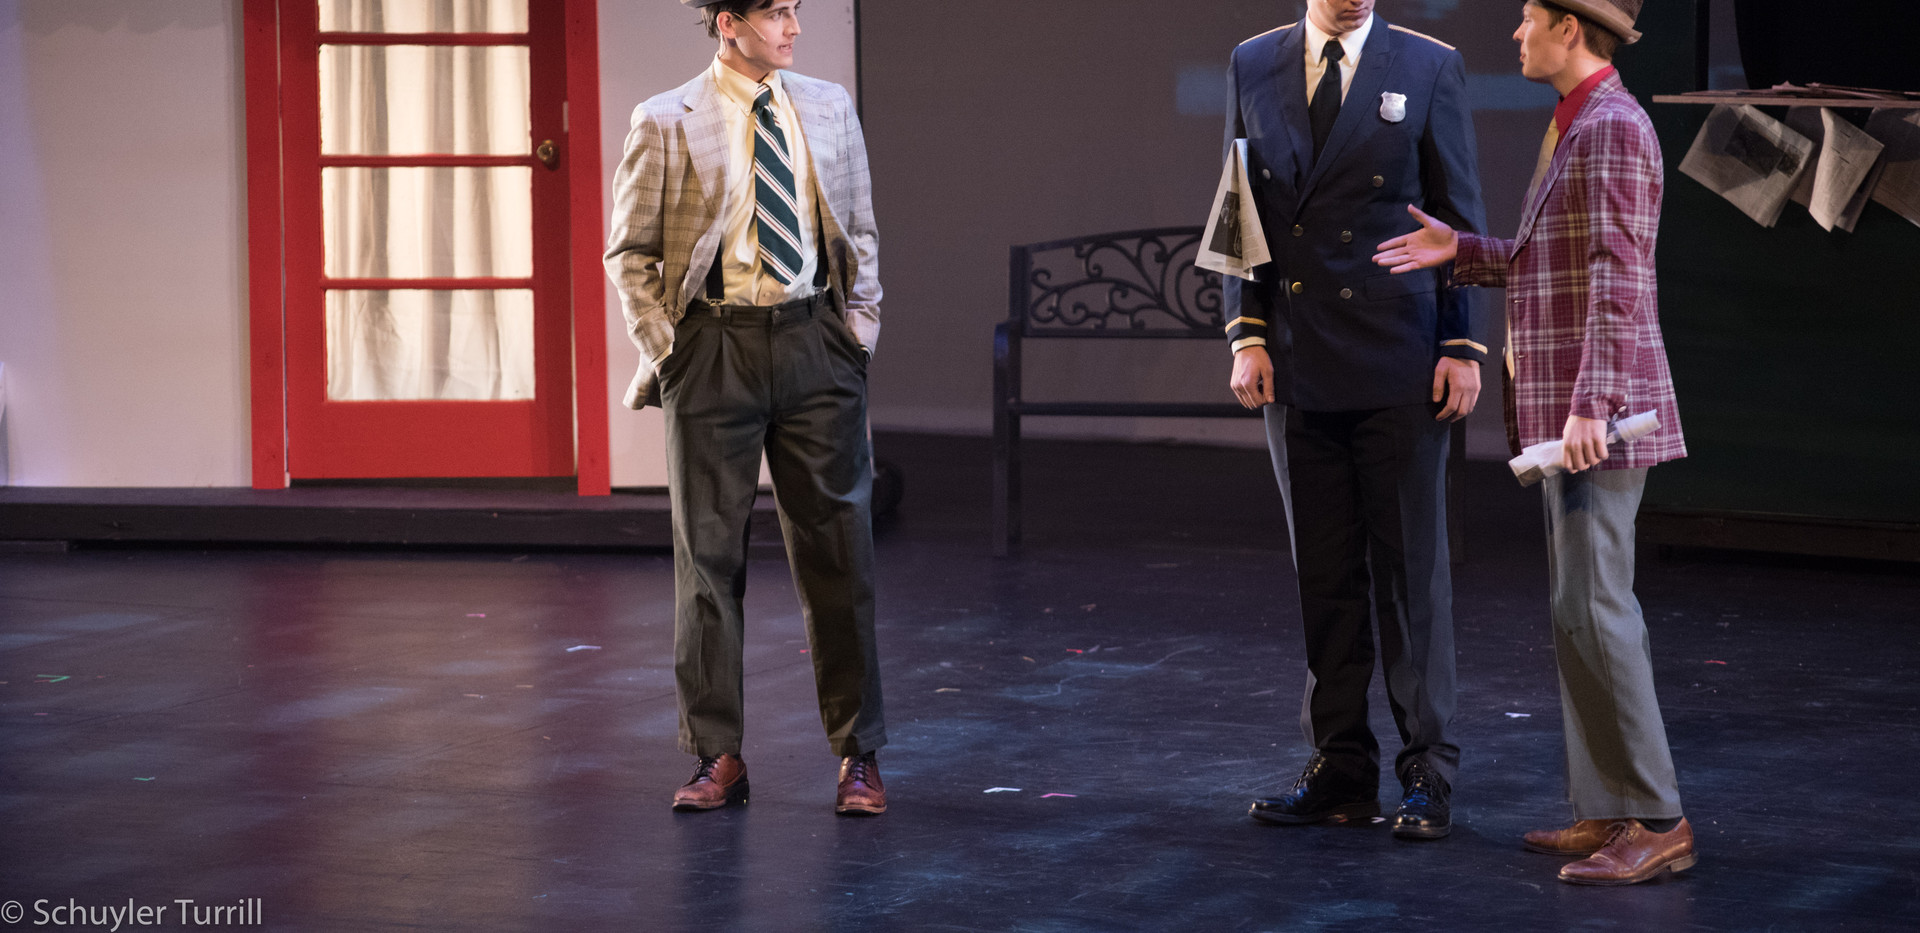 Guys & Dolls - Gamblers and Police Captain